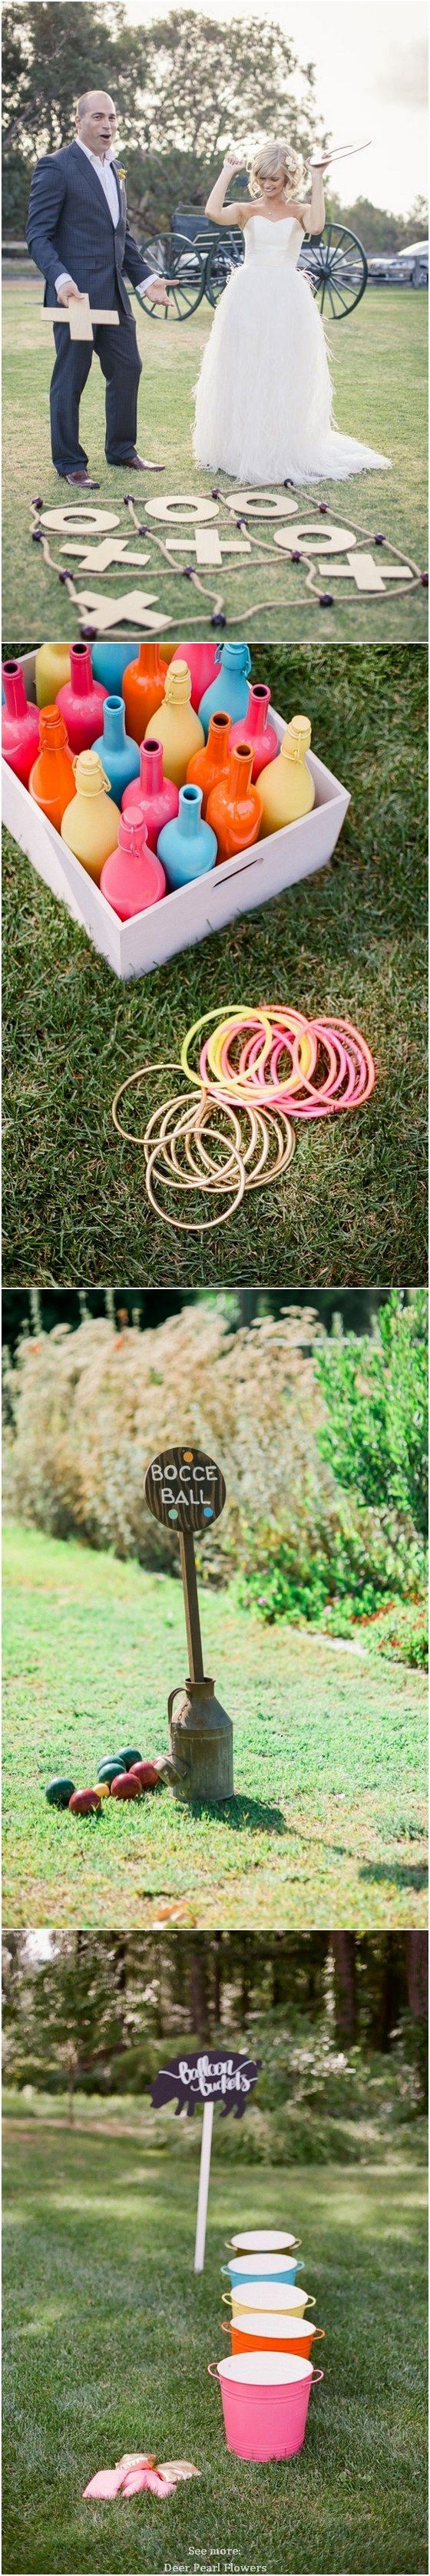 Outdoor Wedding Reception Lawn Game Ideas / http://www.deerpearlflowers.com/outdoor-wedding-reception-lawn-game-ideas/